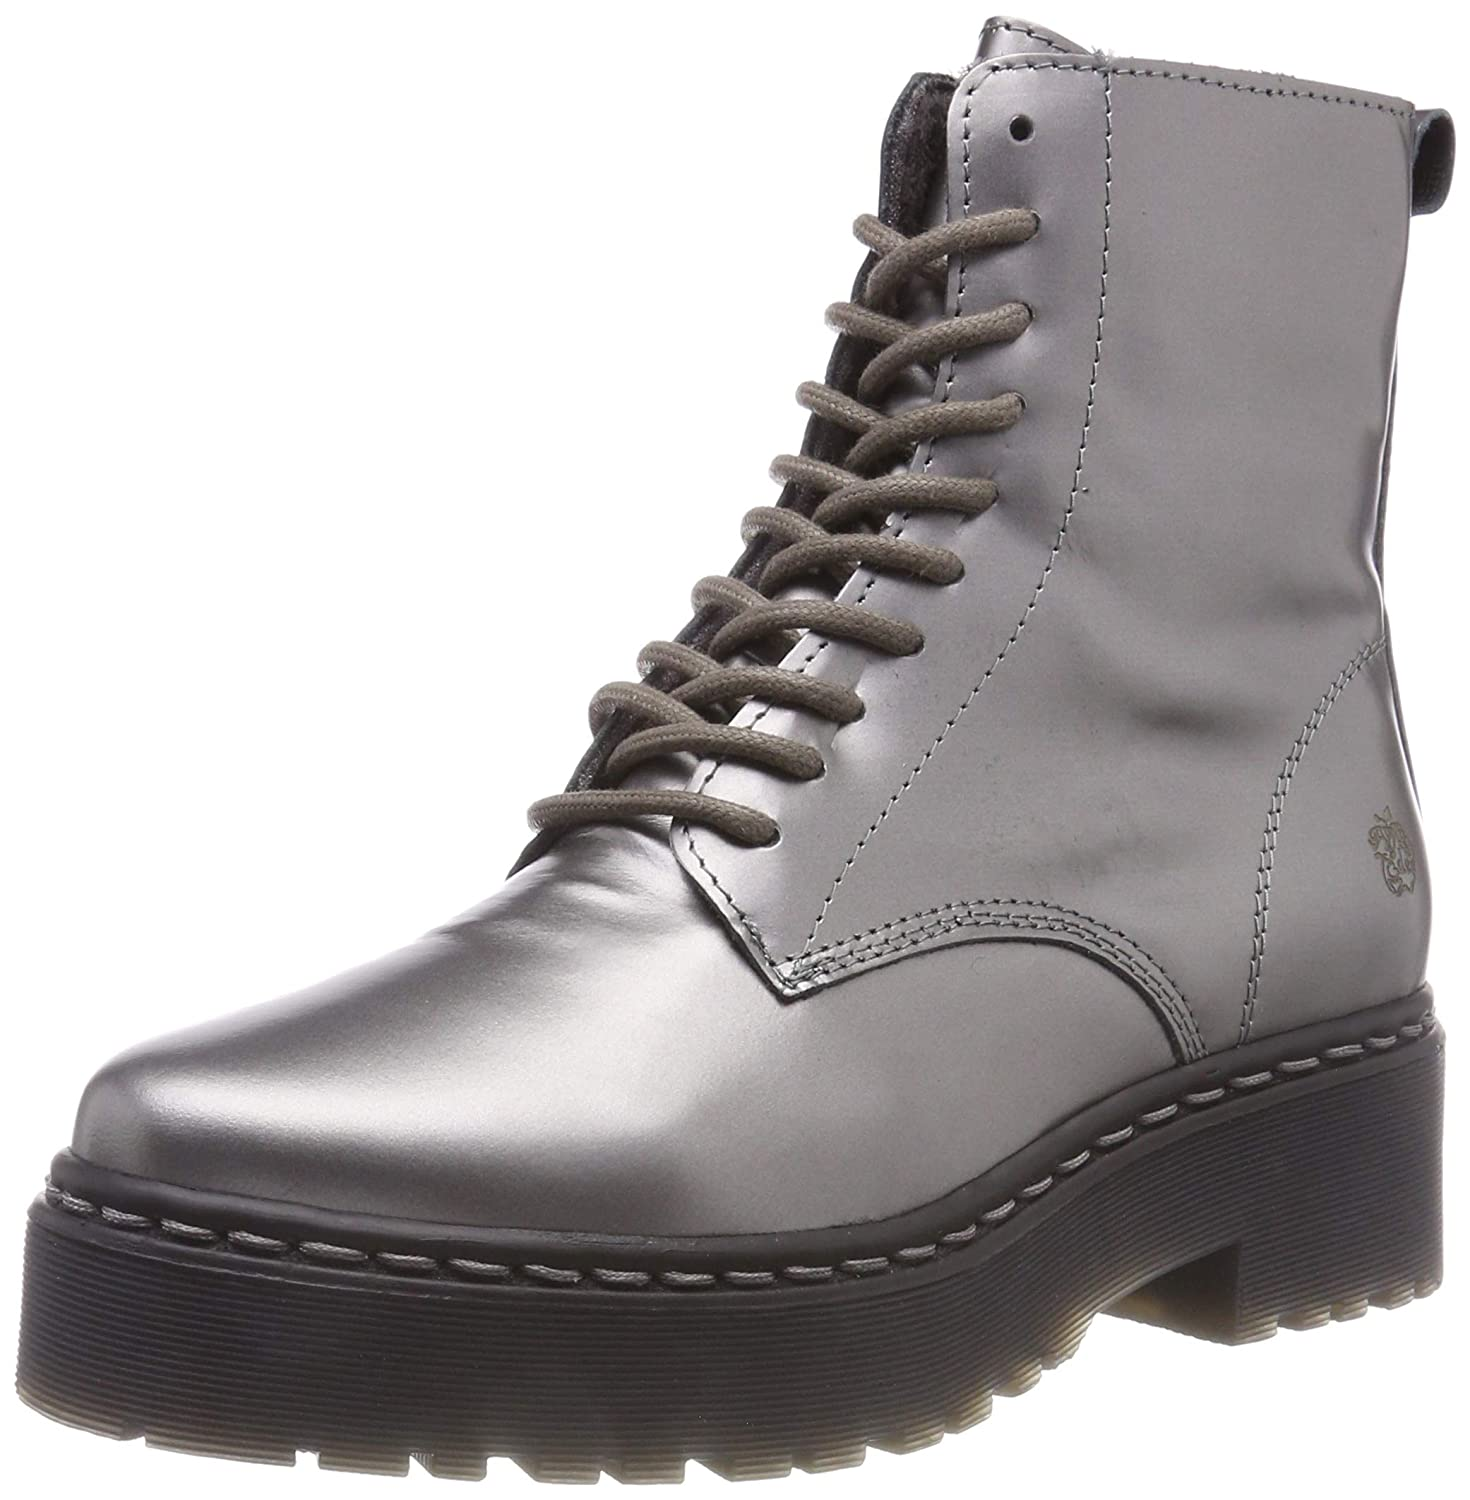 Apple of 19) Eden Bali, Rangers Boots B00V3G90J2 Femme Boots Argenté (Plata 19) be2dbe0 - fast-weightloss-diet.space